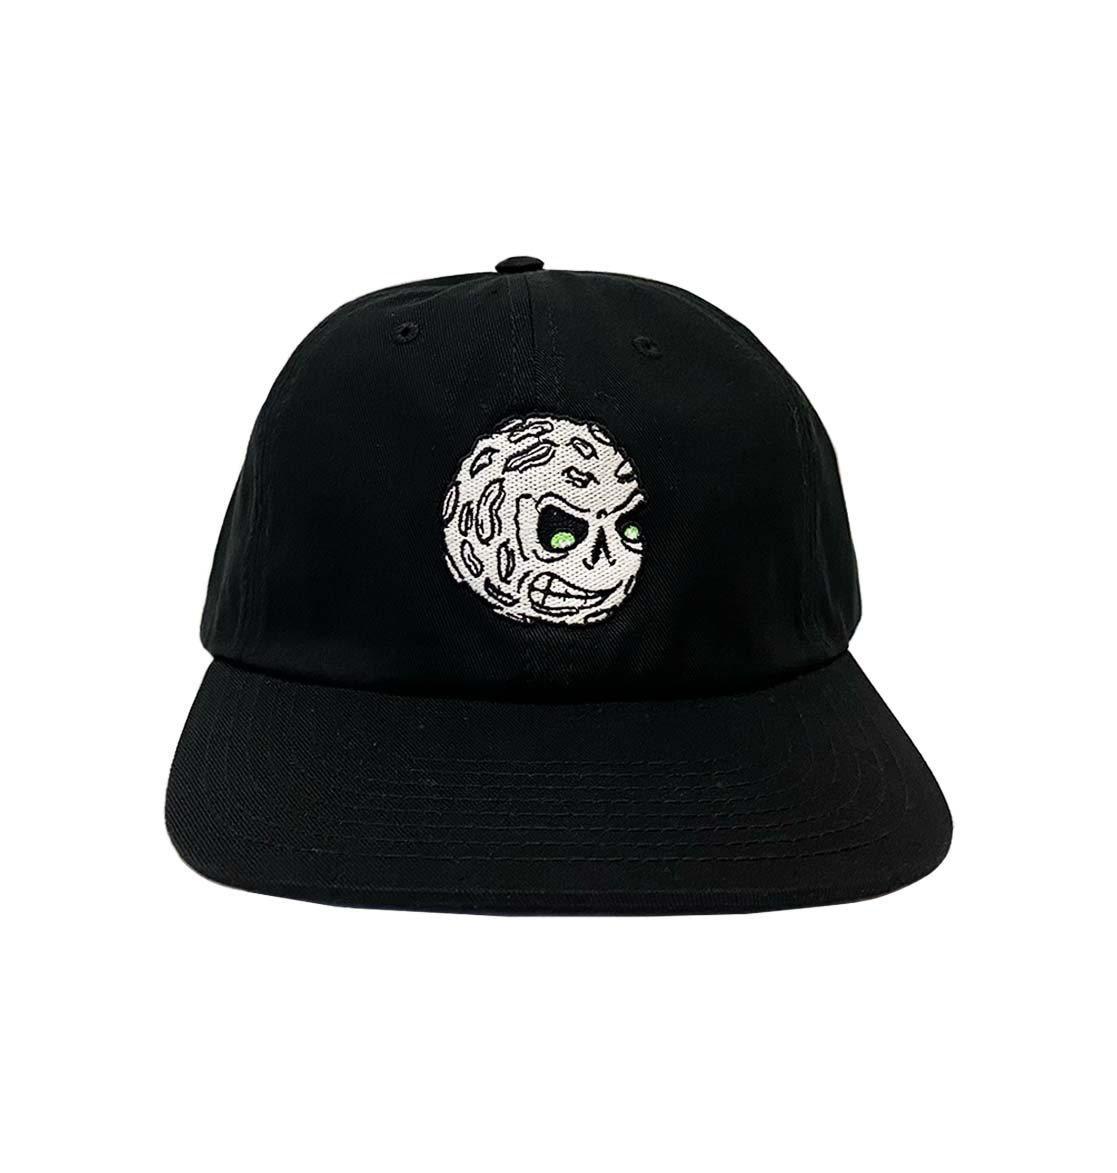 Darkside Angry Moon Dad Hat (Multiple Color Options)